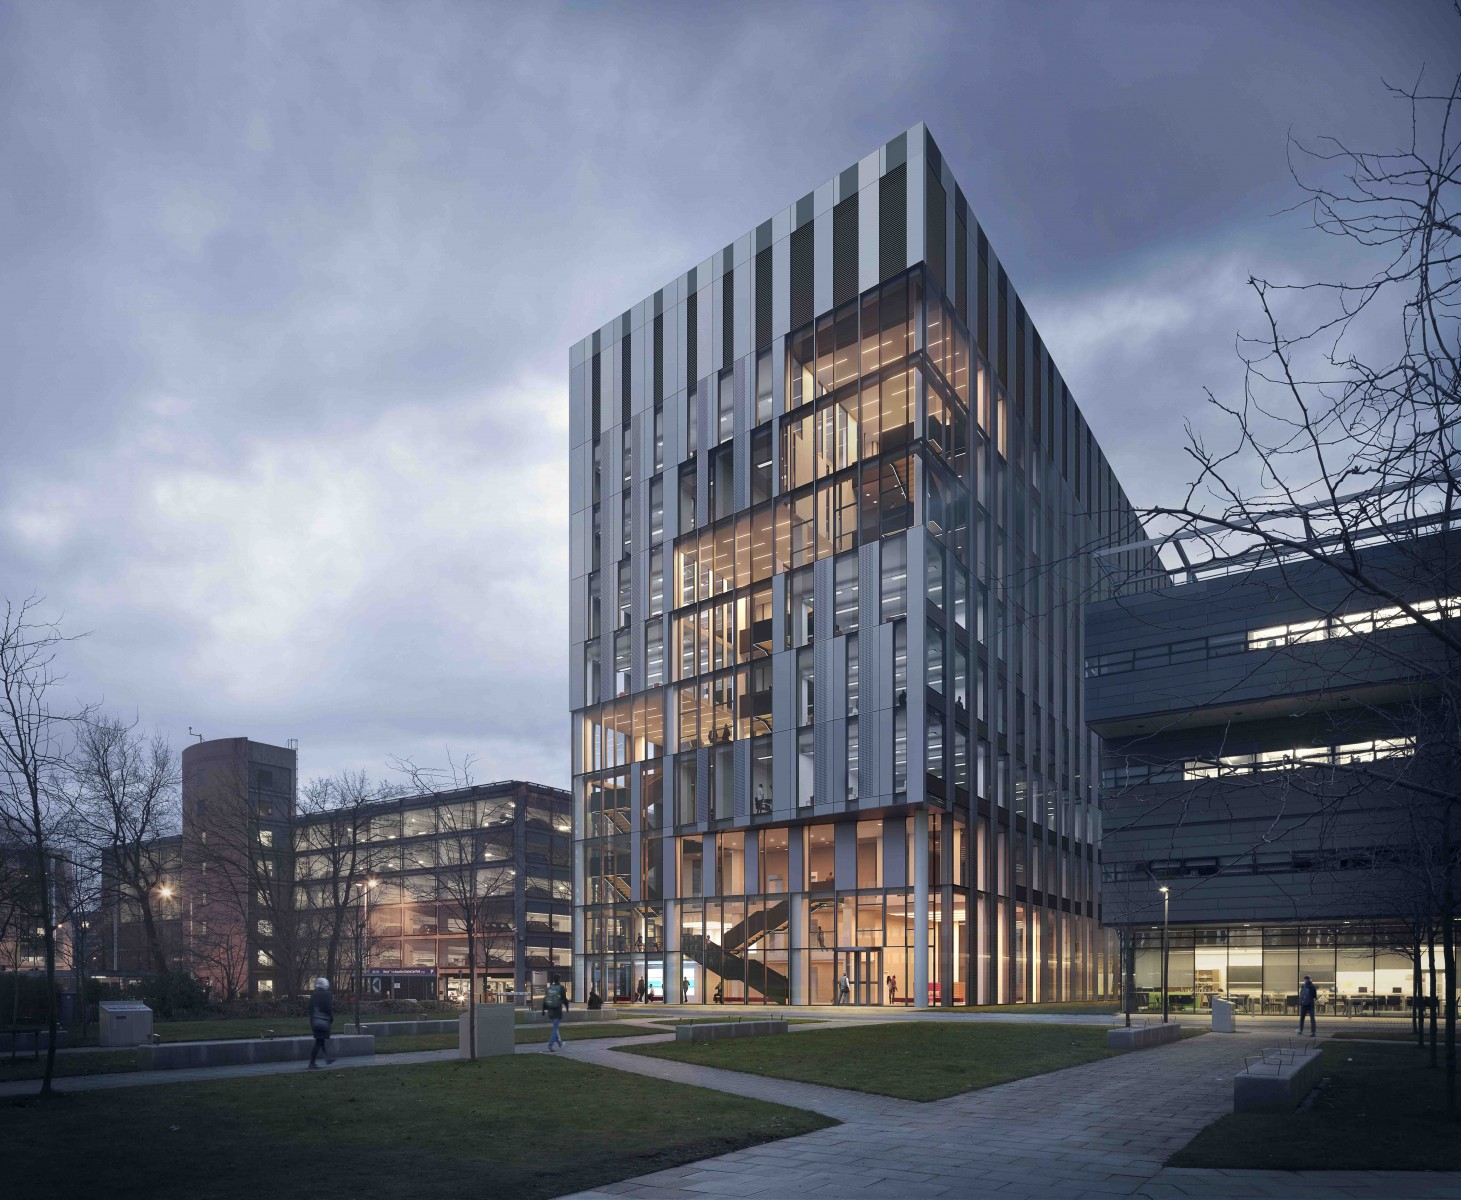 University Of Manchester Engineering Building